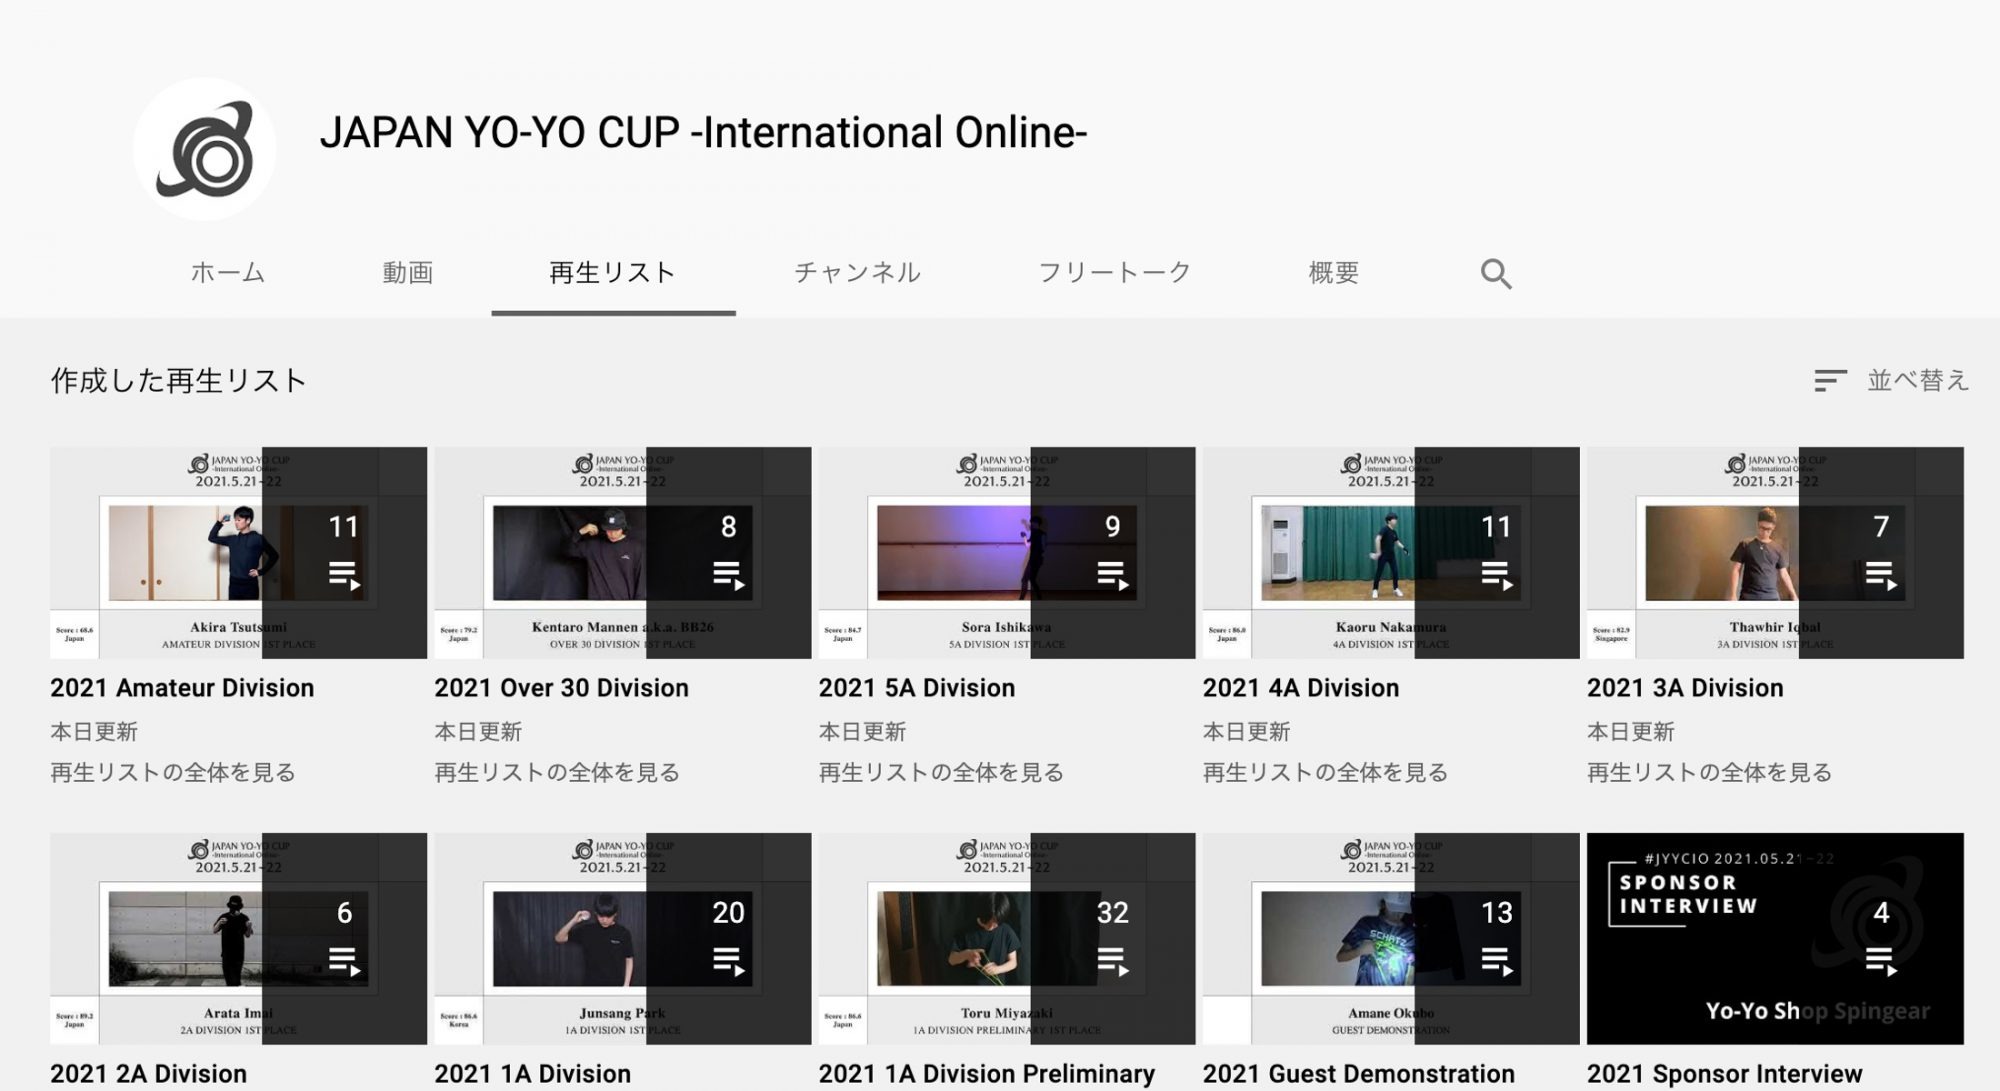 #JYYCIO 2021 カップ全部門映像公開! / All Divisions Players Uproaded!